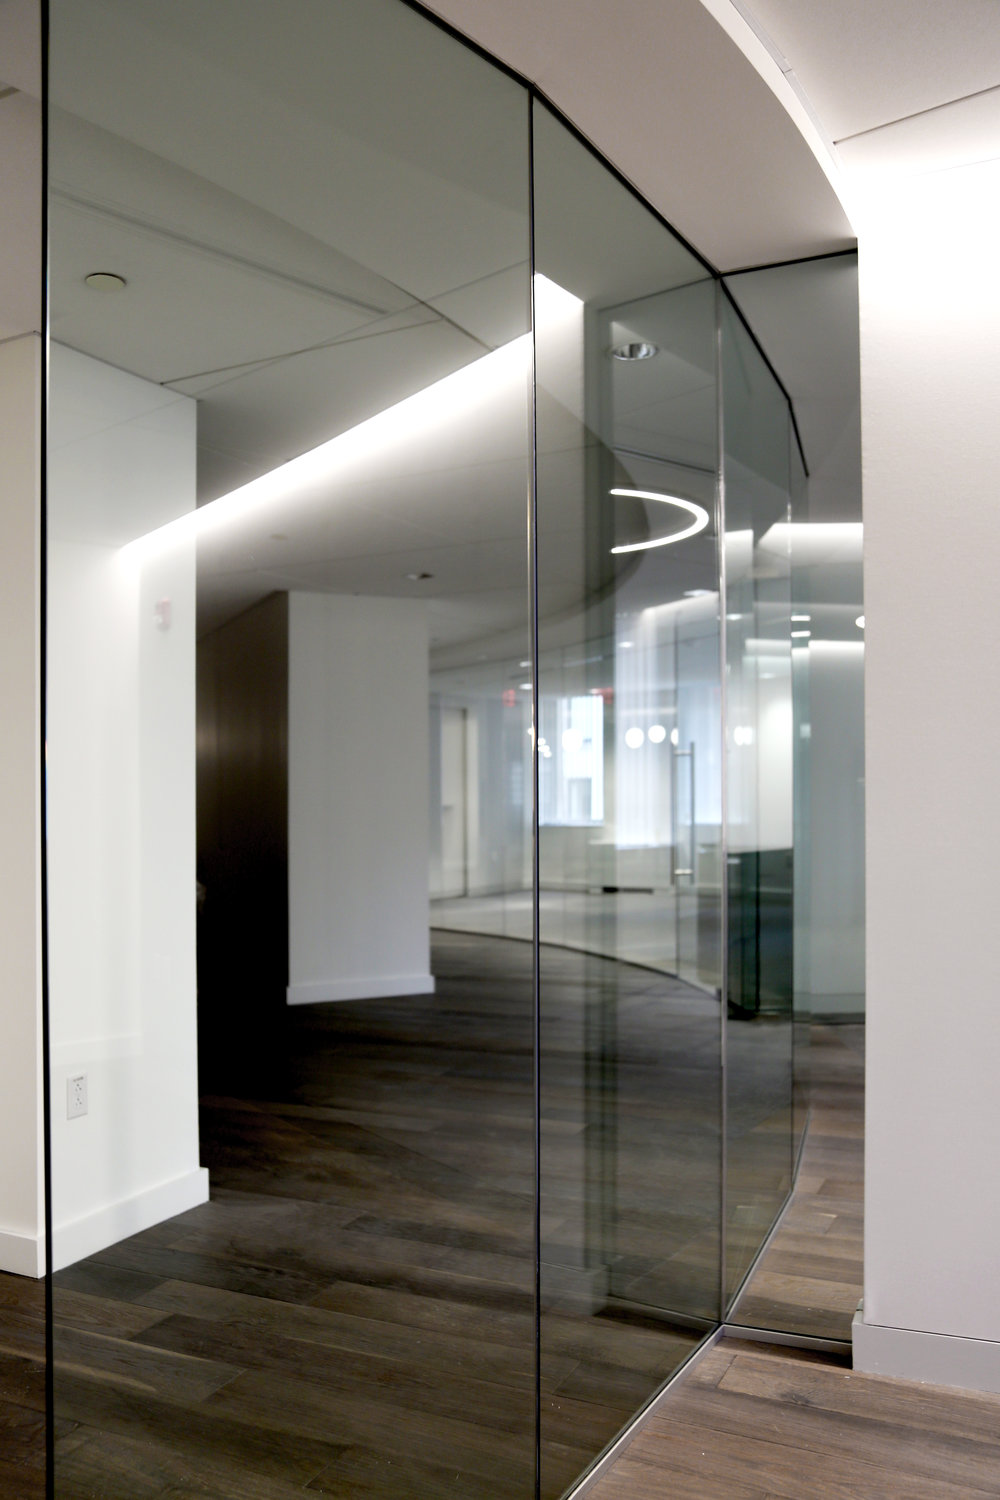 Illume Frameless Glass Wall Curved - Spaceworks AI.jpg